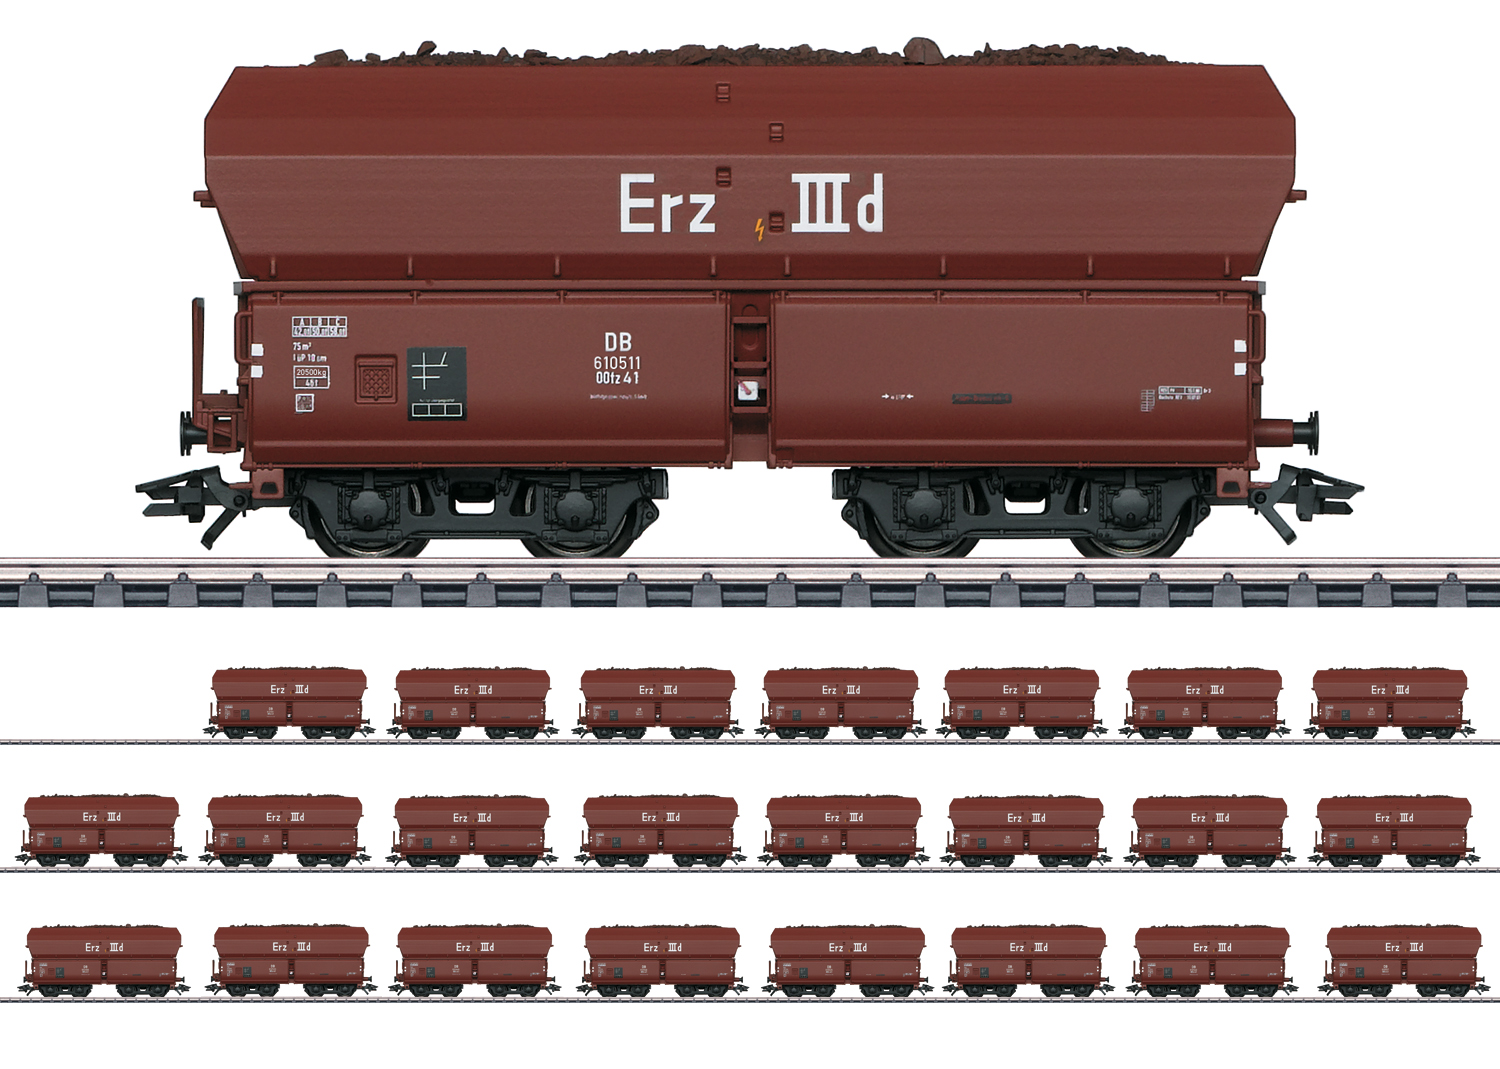 """Type Erz IIId Hopper Car"" Display"